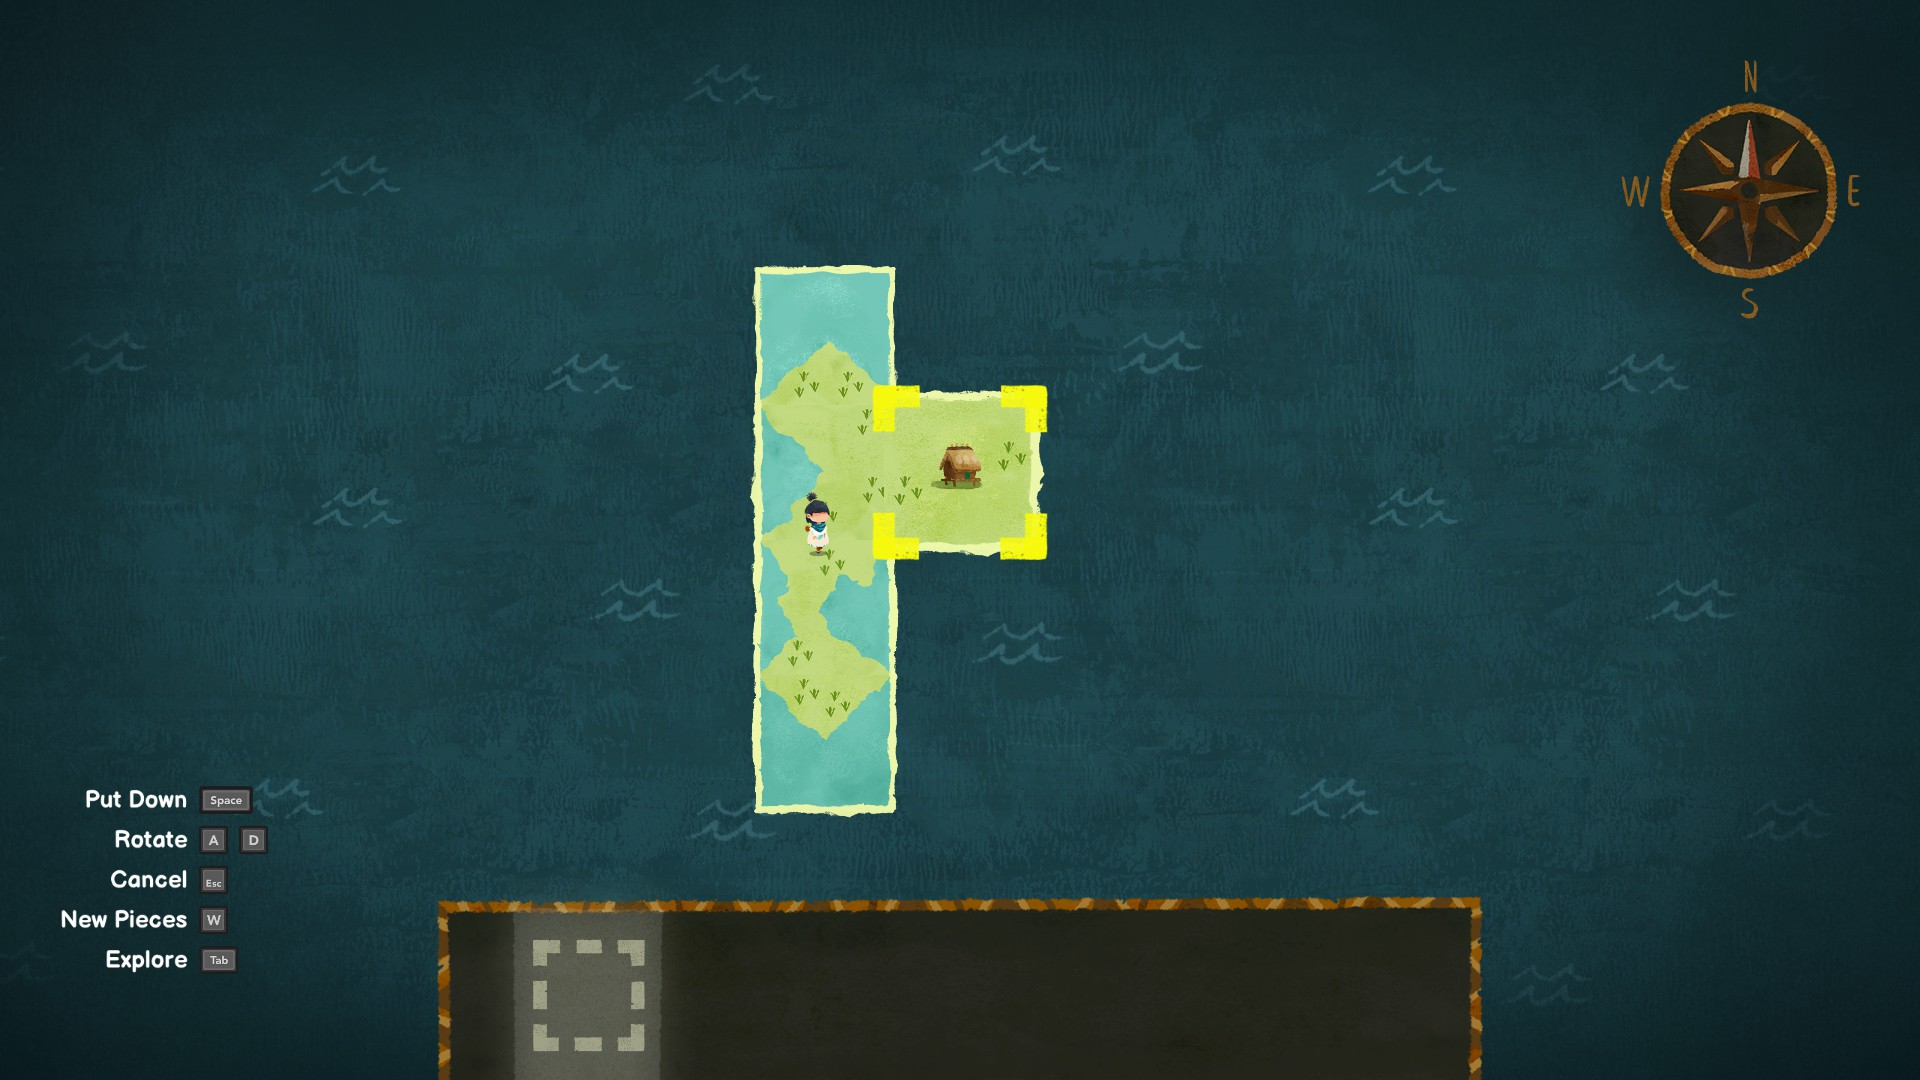 Carto. Placing a map fragment with a house depicted on it